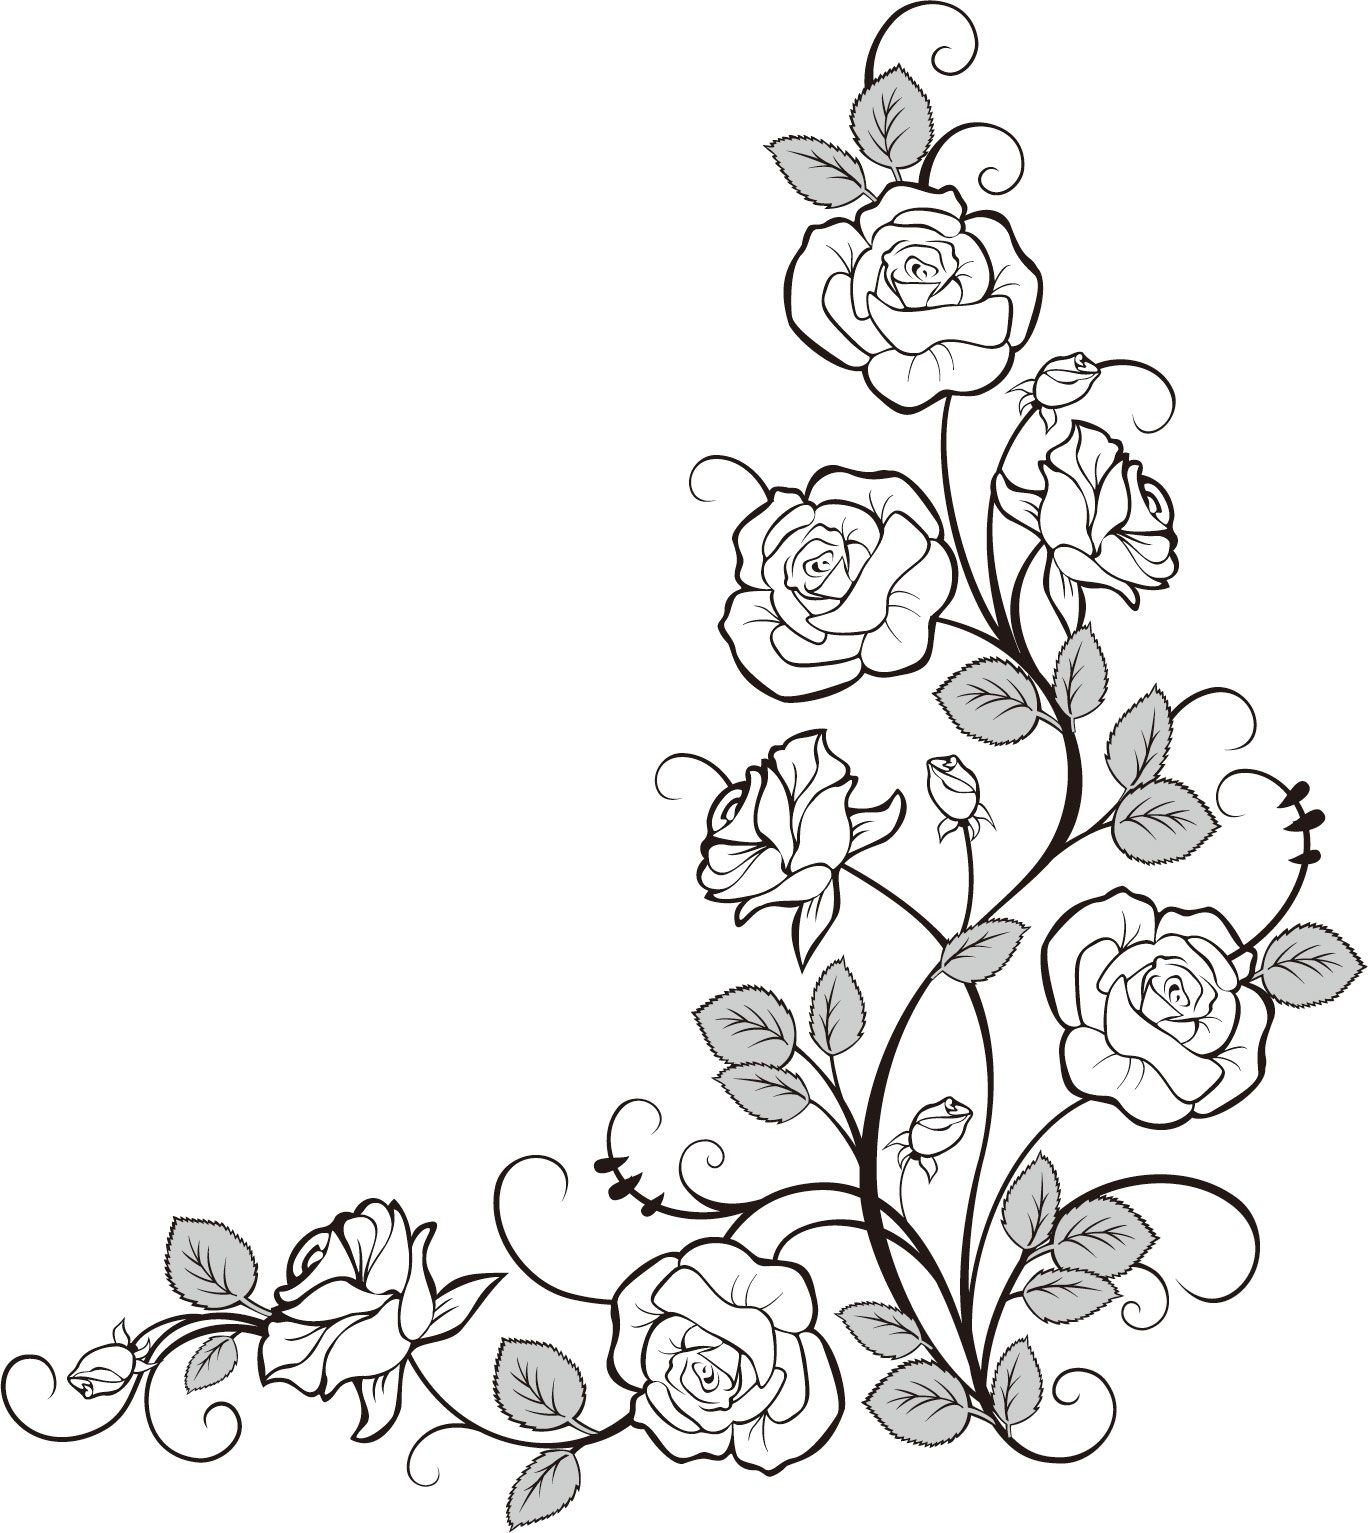 Flower Beautiful Border Design For Chart Paper